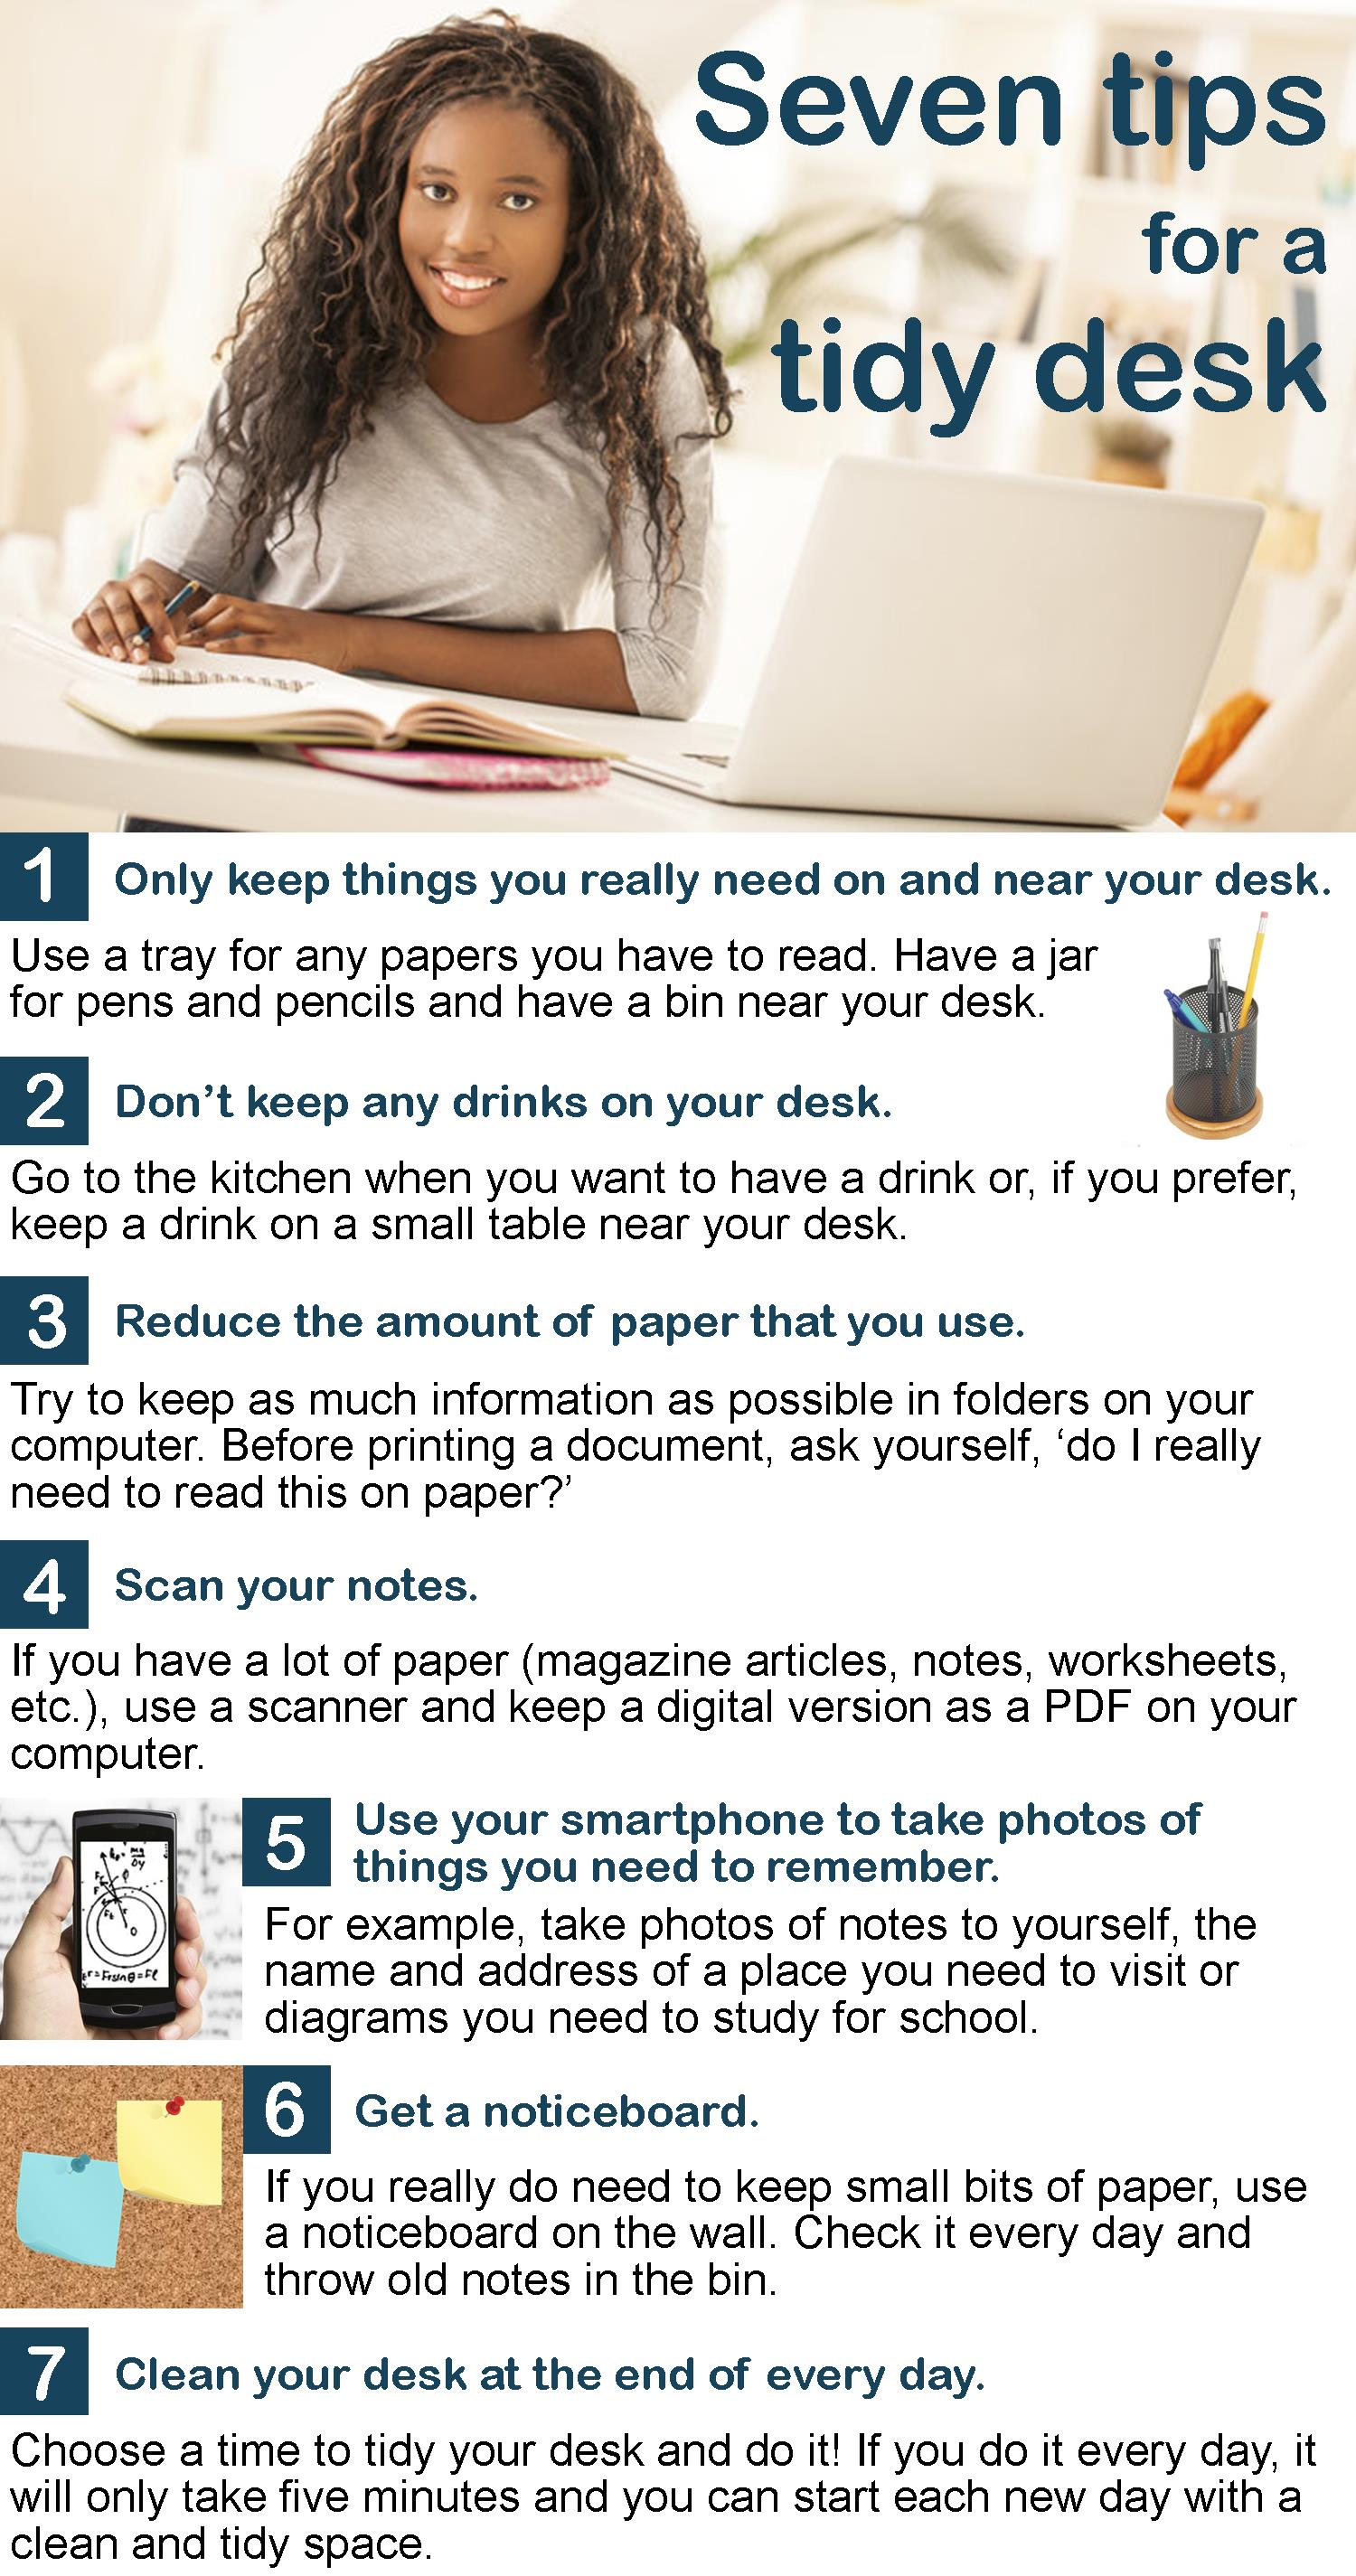 7 Tips For A Tidy Desk Learnenglish Teens